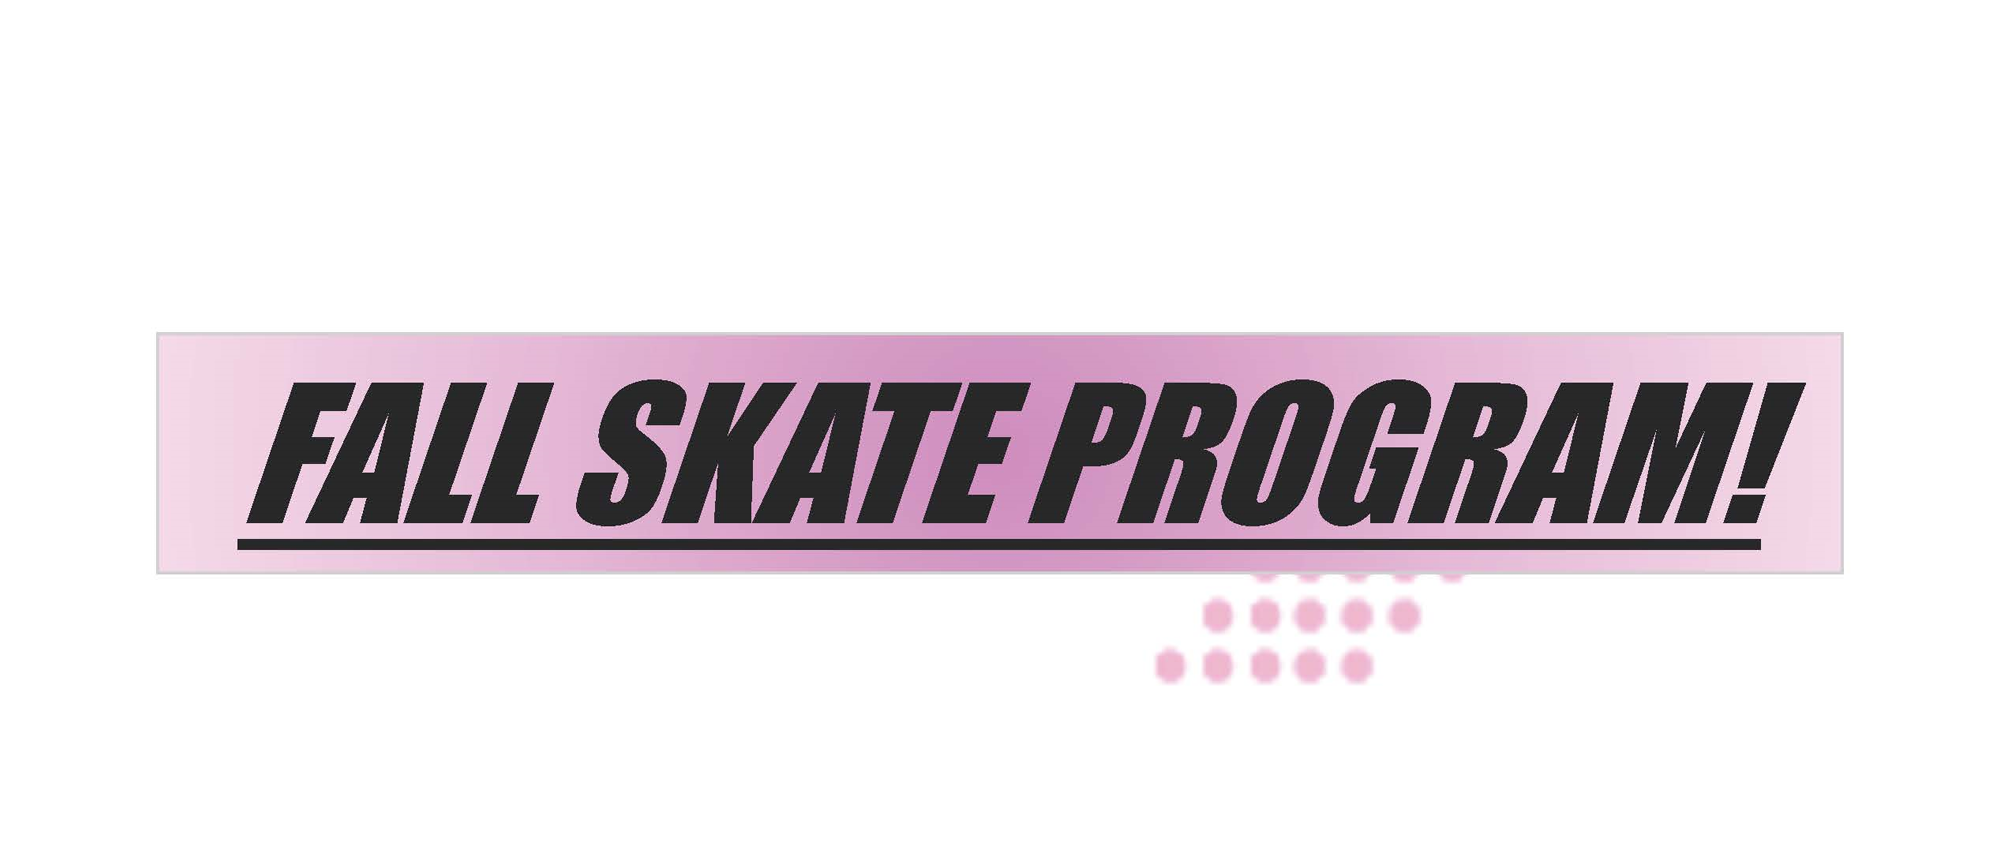 """Black texts on pink box says """"Fall Skate Program!"""" Underneath the title in larger pink box also in black text reads """"Program dates: Tuesday, Sept 21-Oct 26 / Time: 5pm-7pm / Where: All Together Skatepark / Who: Youth age 11-19 / Cost: Free / No experience necessary / For more information, please contact: Nancy@adwas.org. Below the pink box is a bigger text of CHILL in gray. In pink box at the bottom says """"Come skate with us / Challenge yourself / Learn core values / Develop new skills!"""